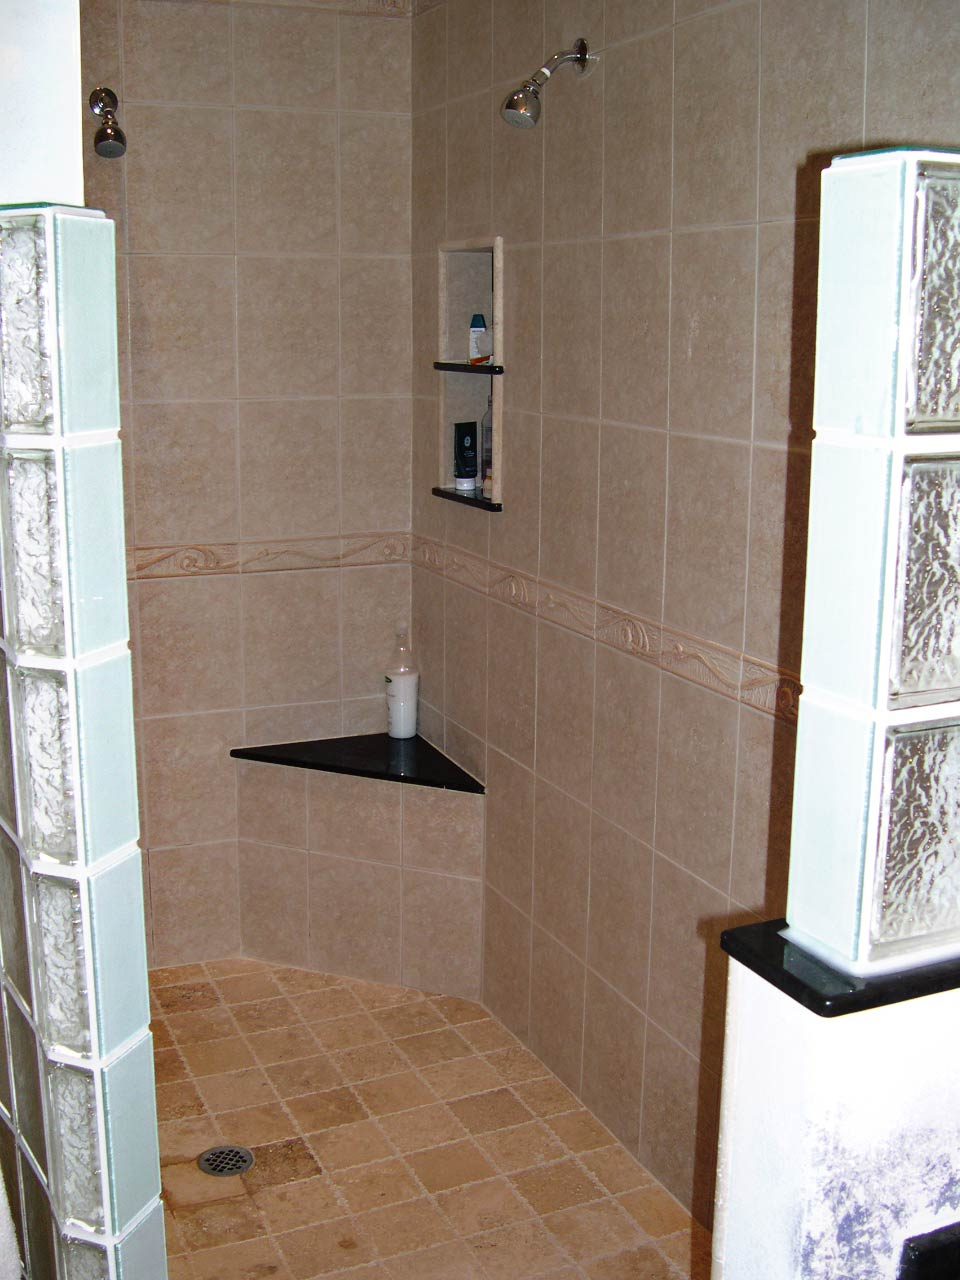 Bathroom Remodel - Tiled Shower